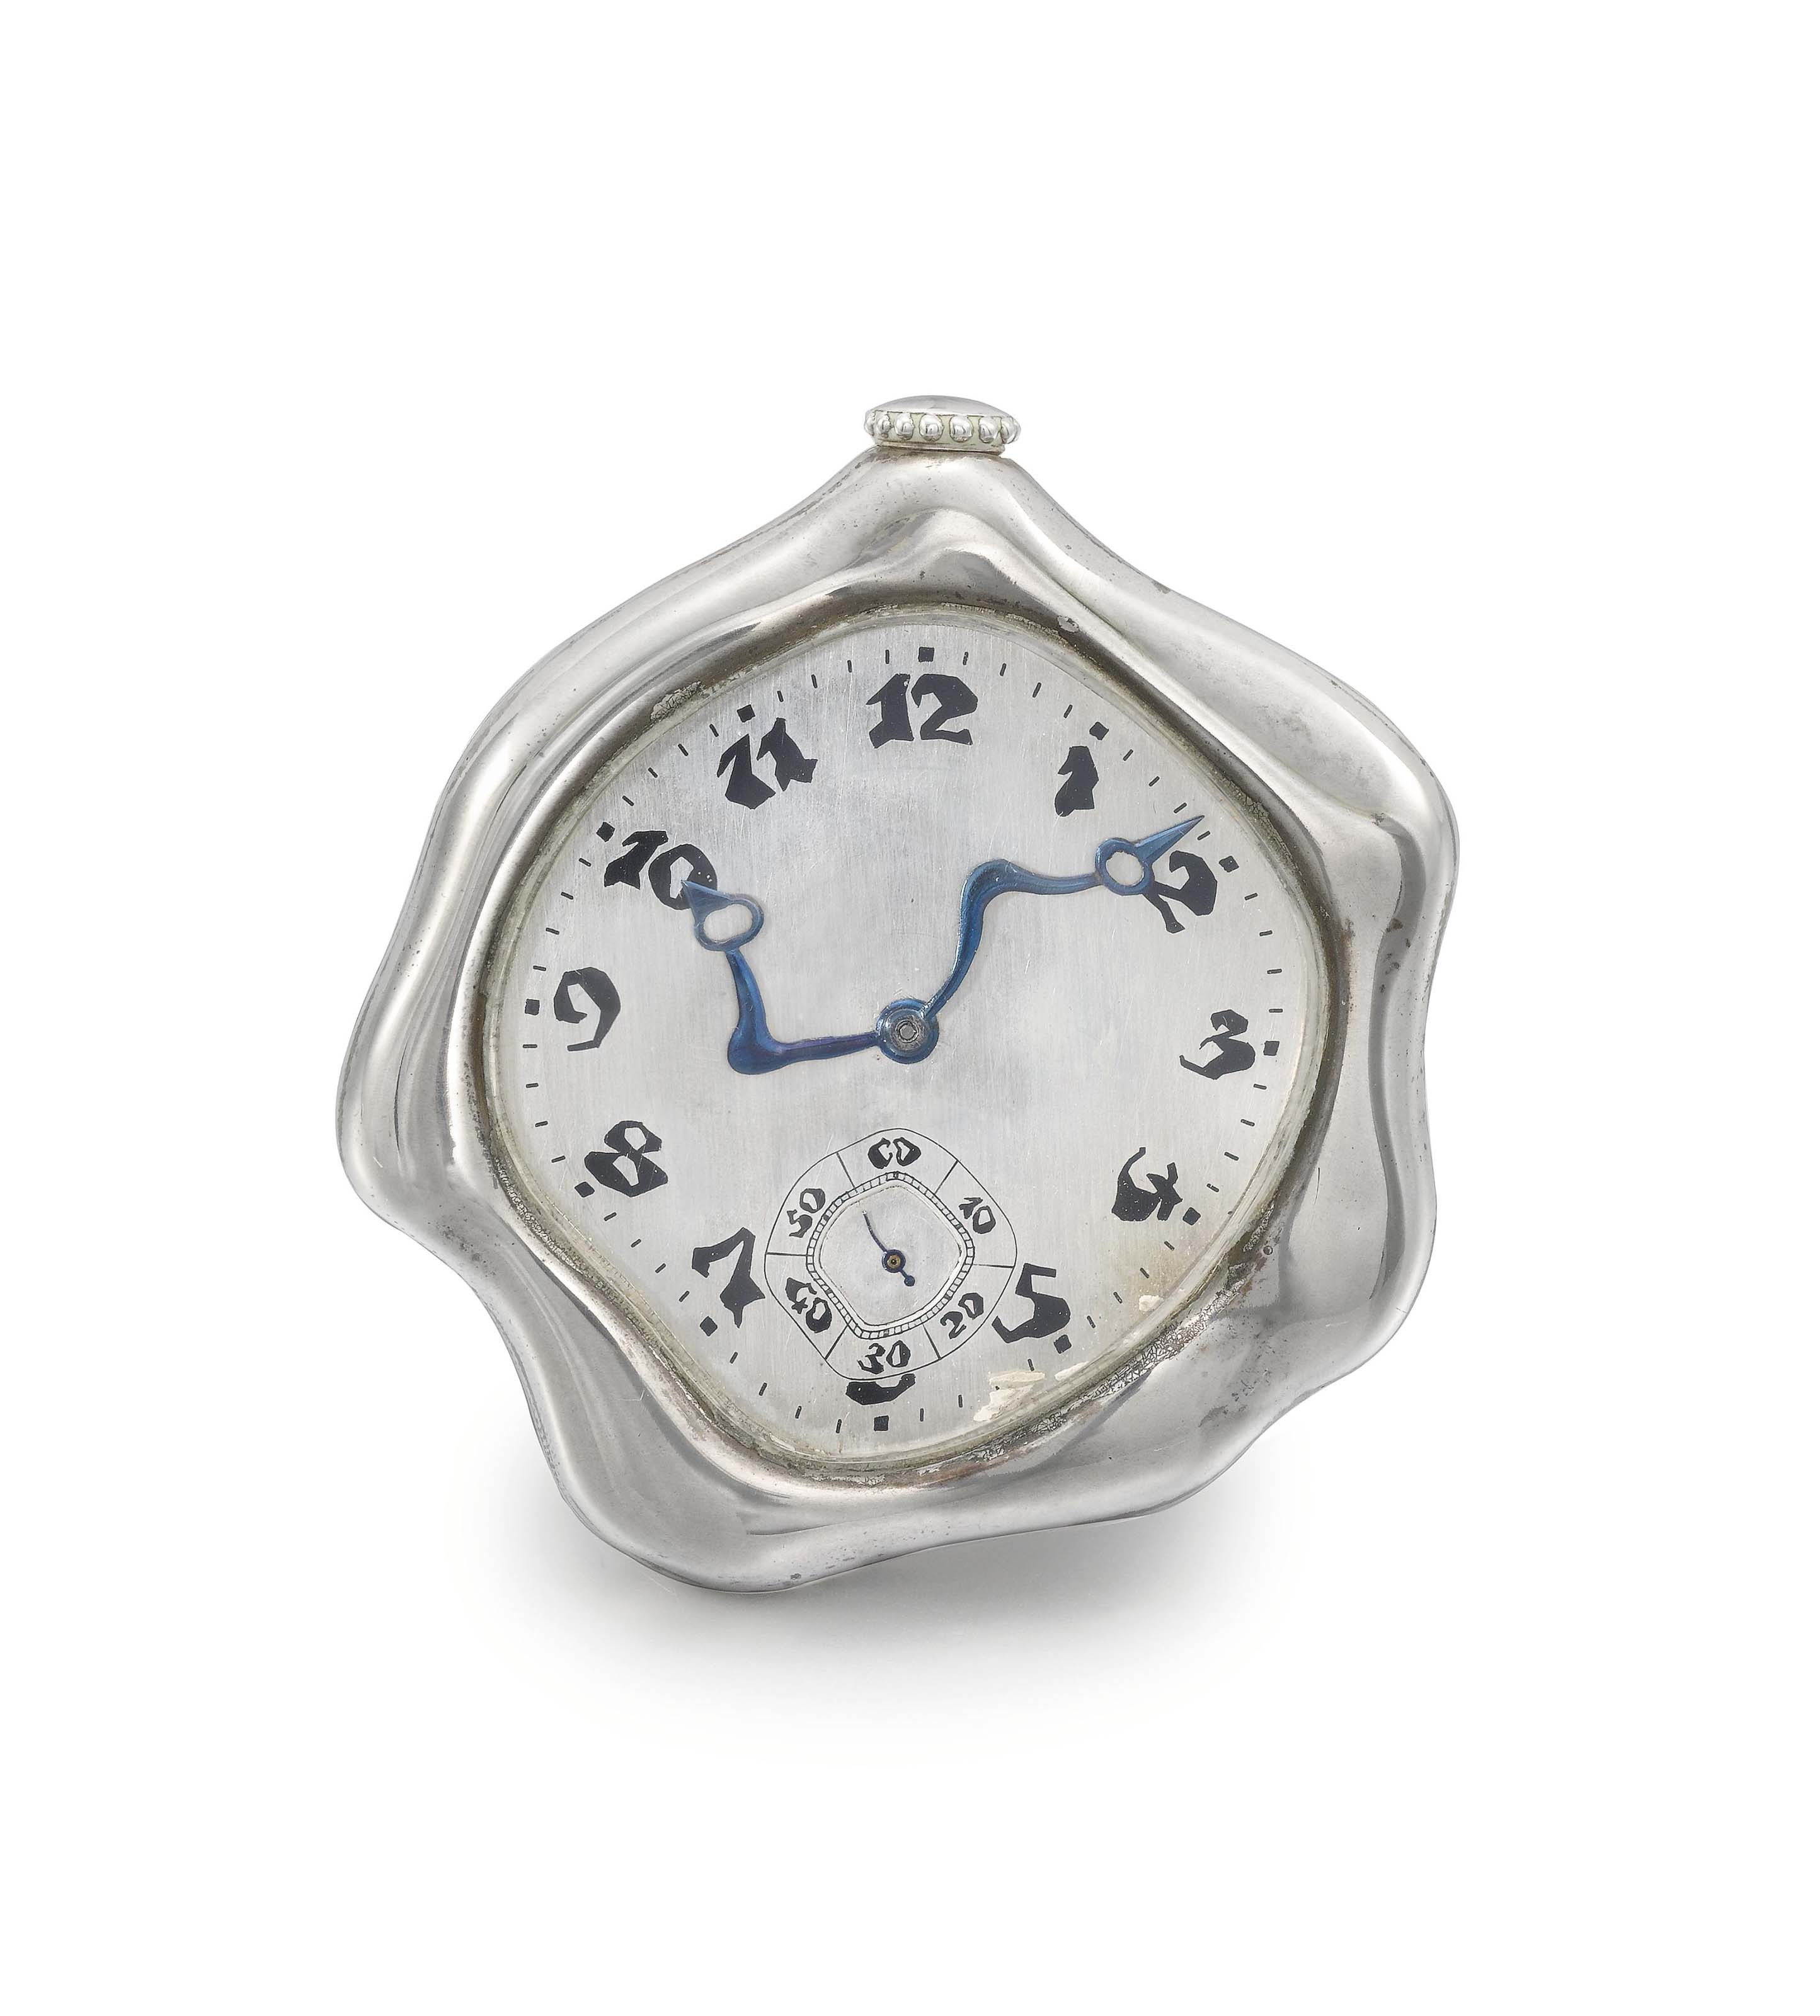 Falcone. A fine and rare large silver asymmetrical watch